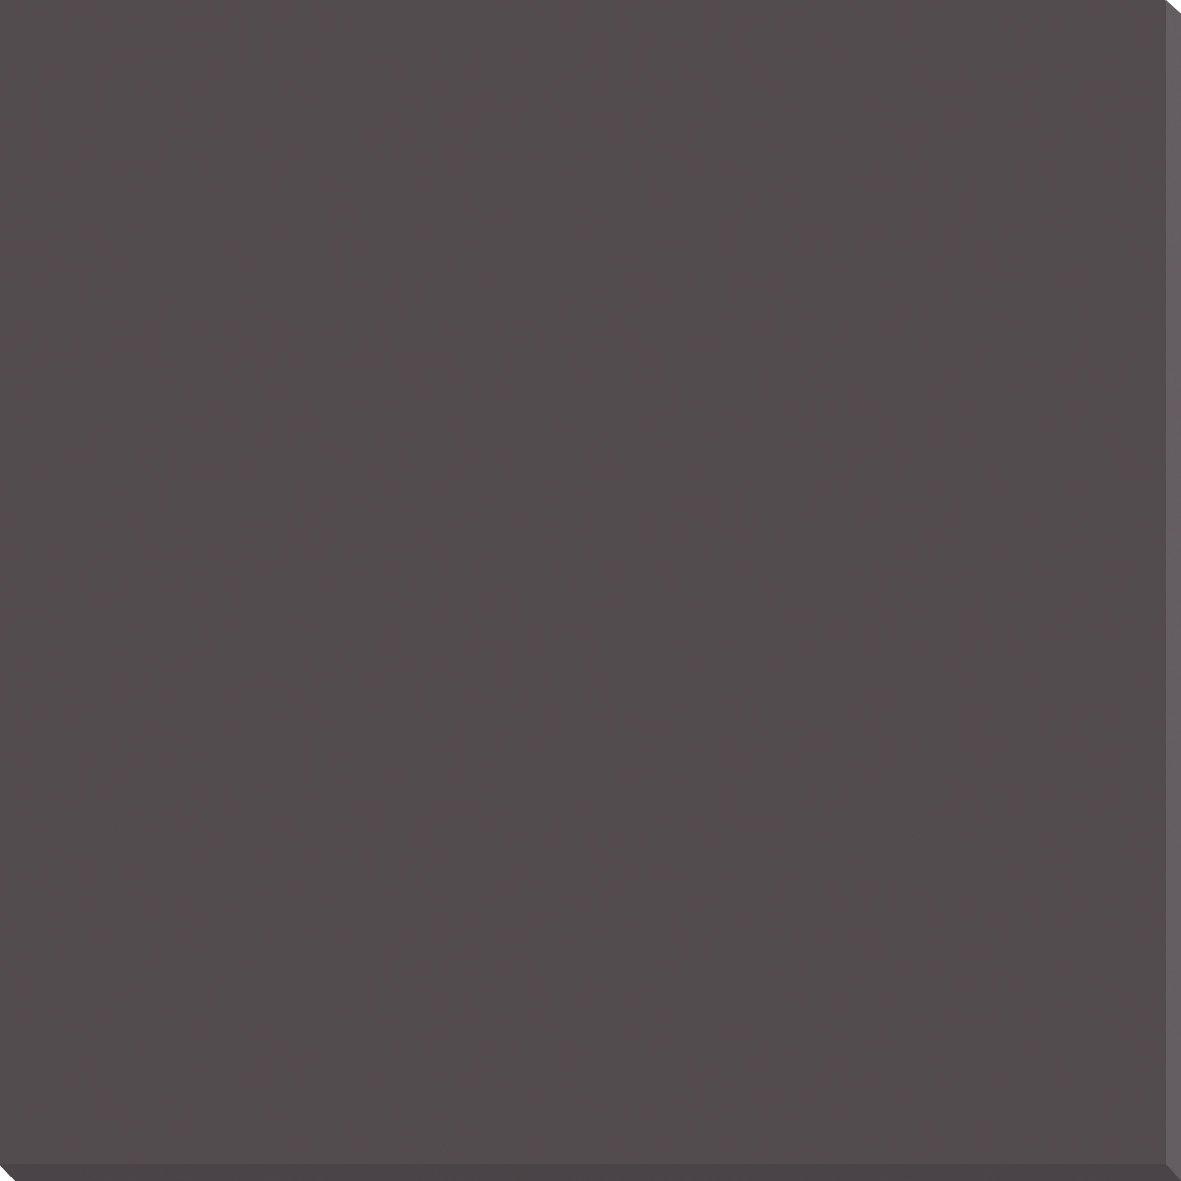 High glossiness pure color grey floor tile 3315-A